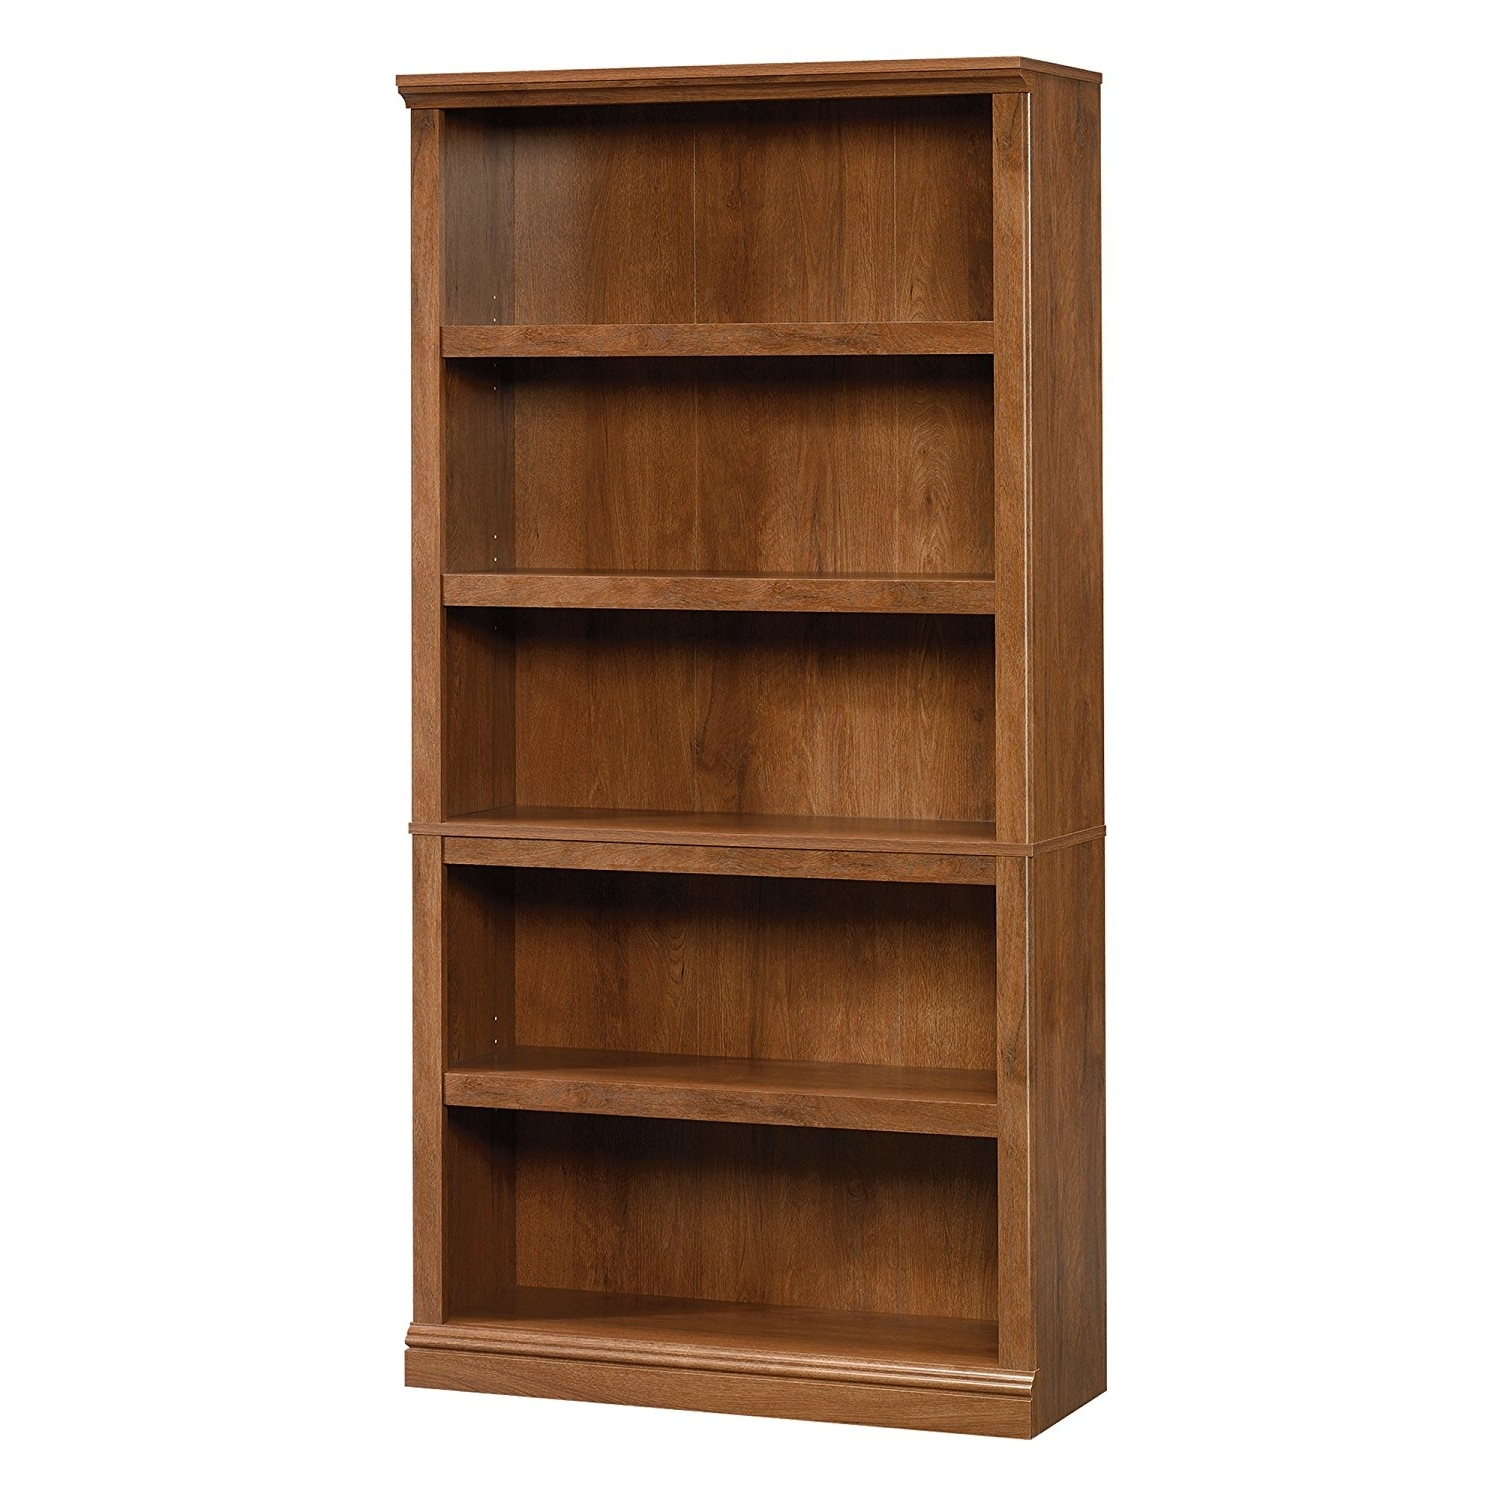 Preferred Furniture Home: Fearsome Big Lots Bookcases Images Ideas Amazon With Big Lots Bookcases (View 13 of 15)